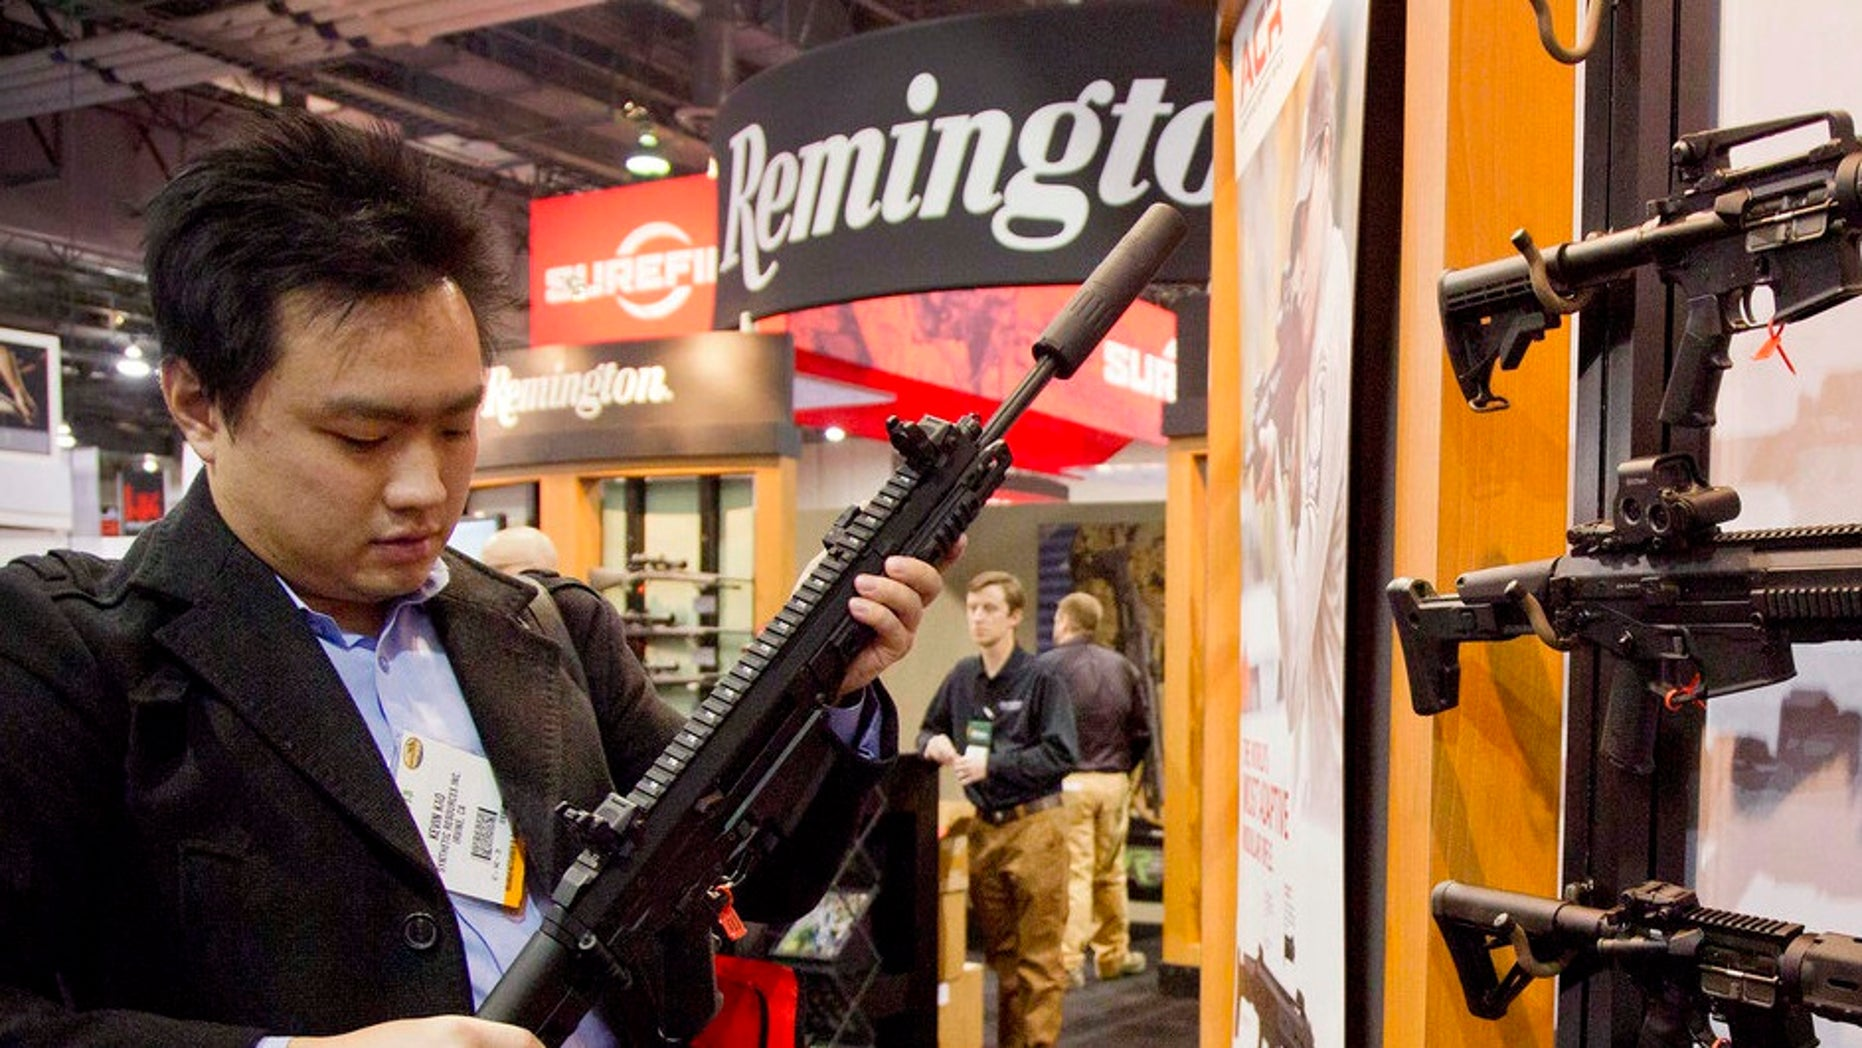 FILE- In this Jan. 15, 2013, file photo, accessories manufacturer Kevin Kao, of Irvine, Calif., examines a military grade Remington Adaptive Combat Rifle at the 35th annual SHOT Show in Las Vegas. A U.S. judge has struck down a nearly century-old California law that banned gun shops from advertising handguns on their premises. Judge Troy Nunley in Sacramento ruled Tuesday, Sept. 11, 2018, that the law violated the First Amendment. Nunley said the state failed to show that enforcing the law would prevent violence or suicides. The ruling came in a lawsuit filed in 2014 by several gun dealers who were fined by the state for handgun ads. The 1923 law banned any handgun ads at gun shops that were visible from outside the store. (AP Photo/Julie Jacobson, File)